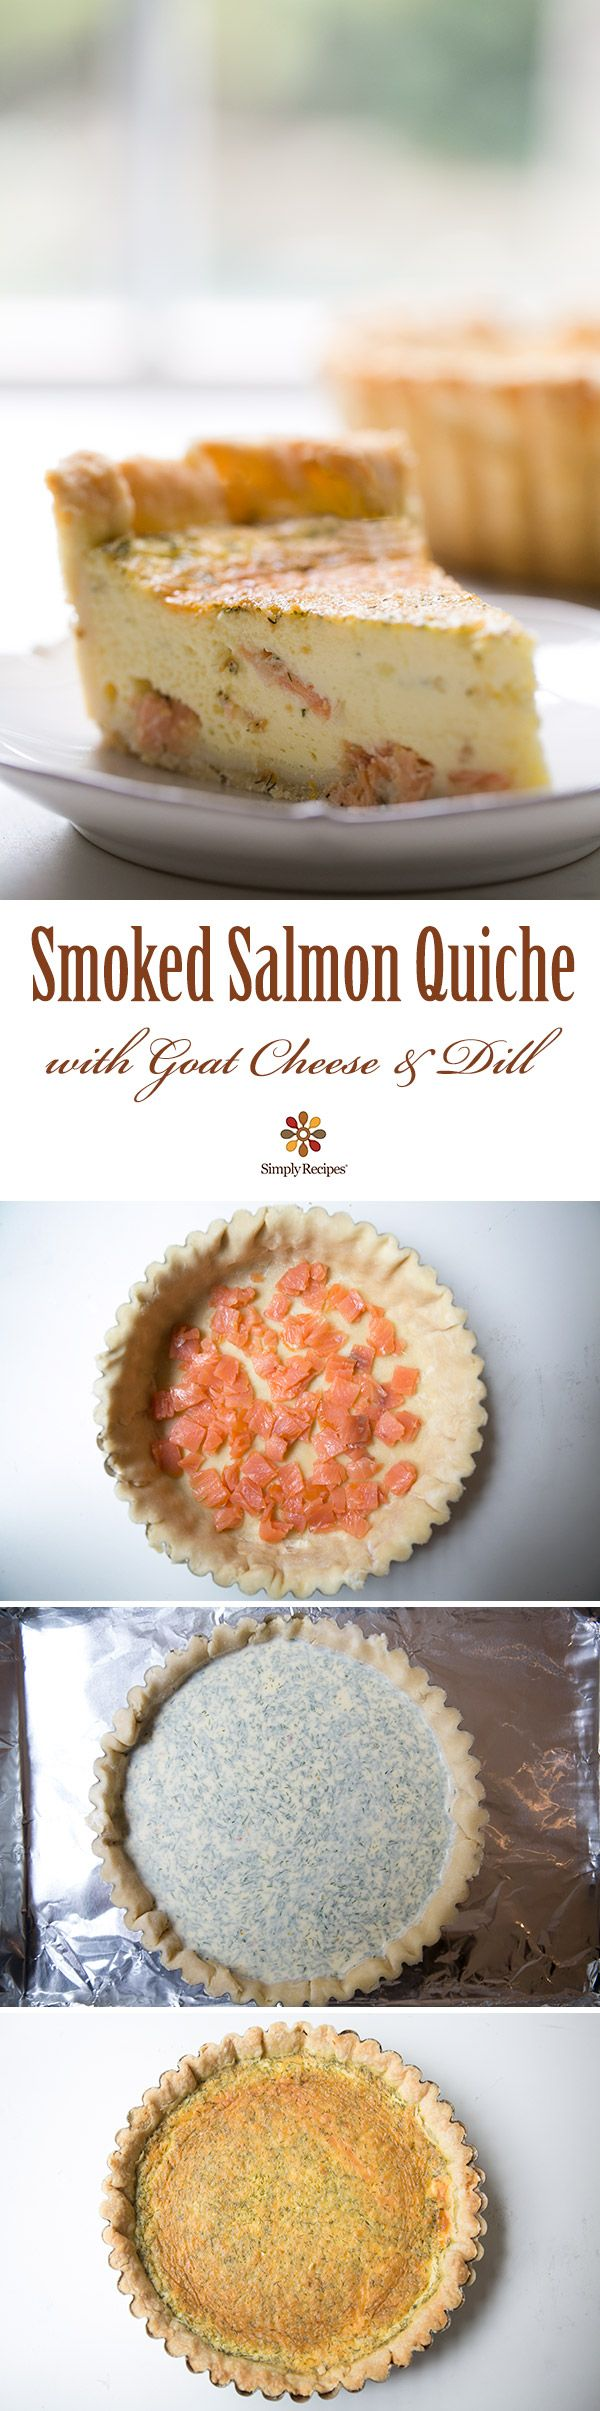 Smoked Salmon, Dill, and Goat Cheese Quiche (lemon, pie crust, milk, heavy cream, eggs)